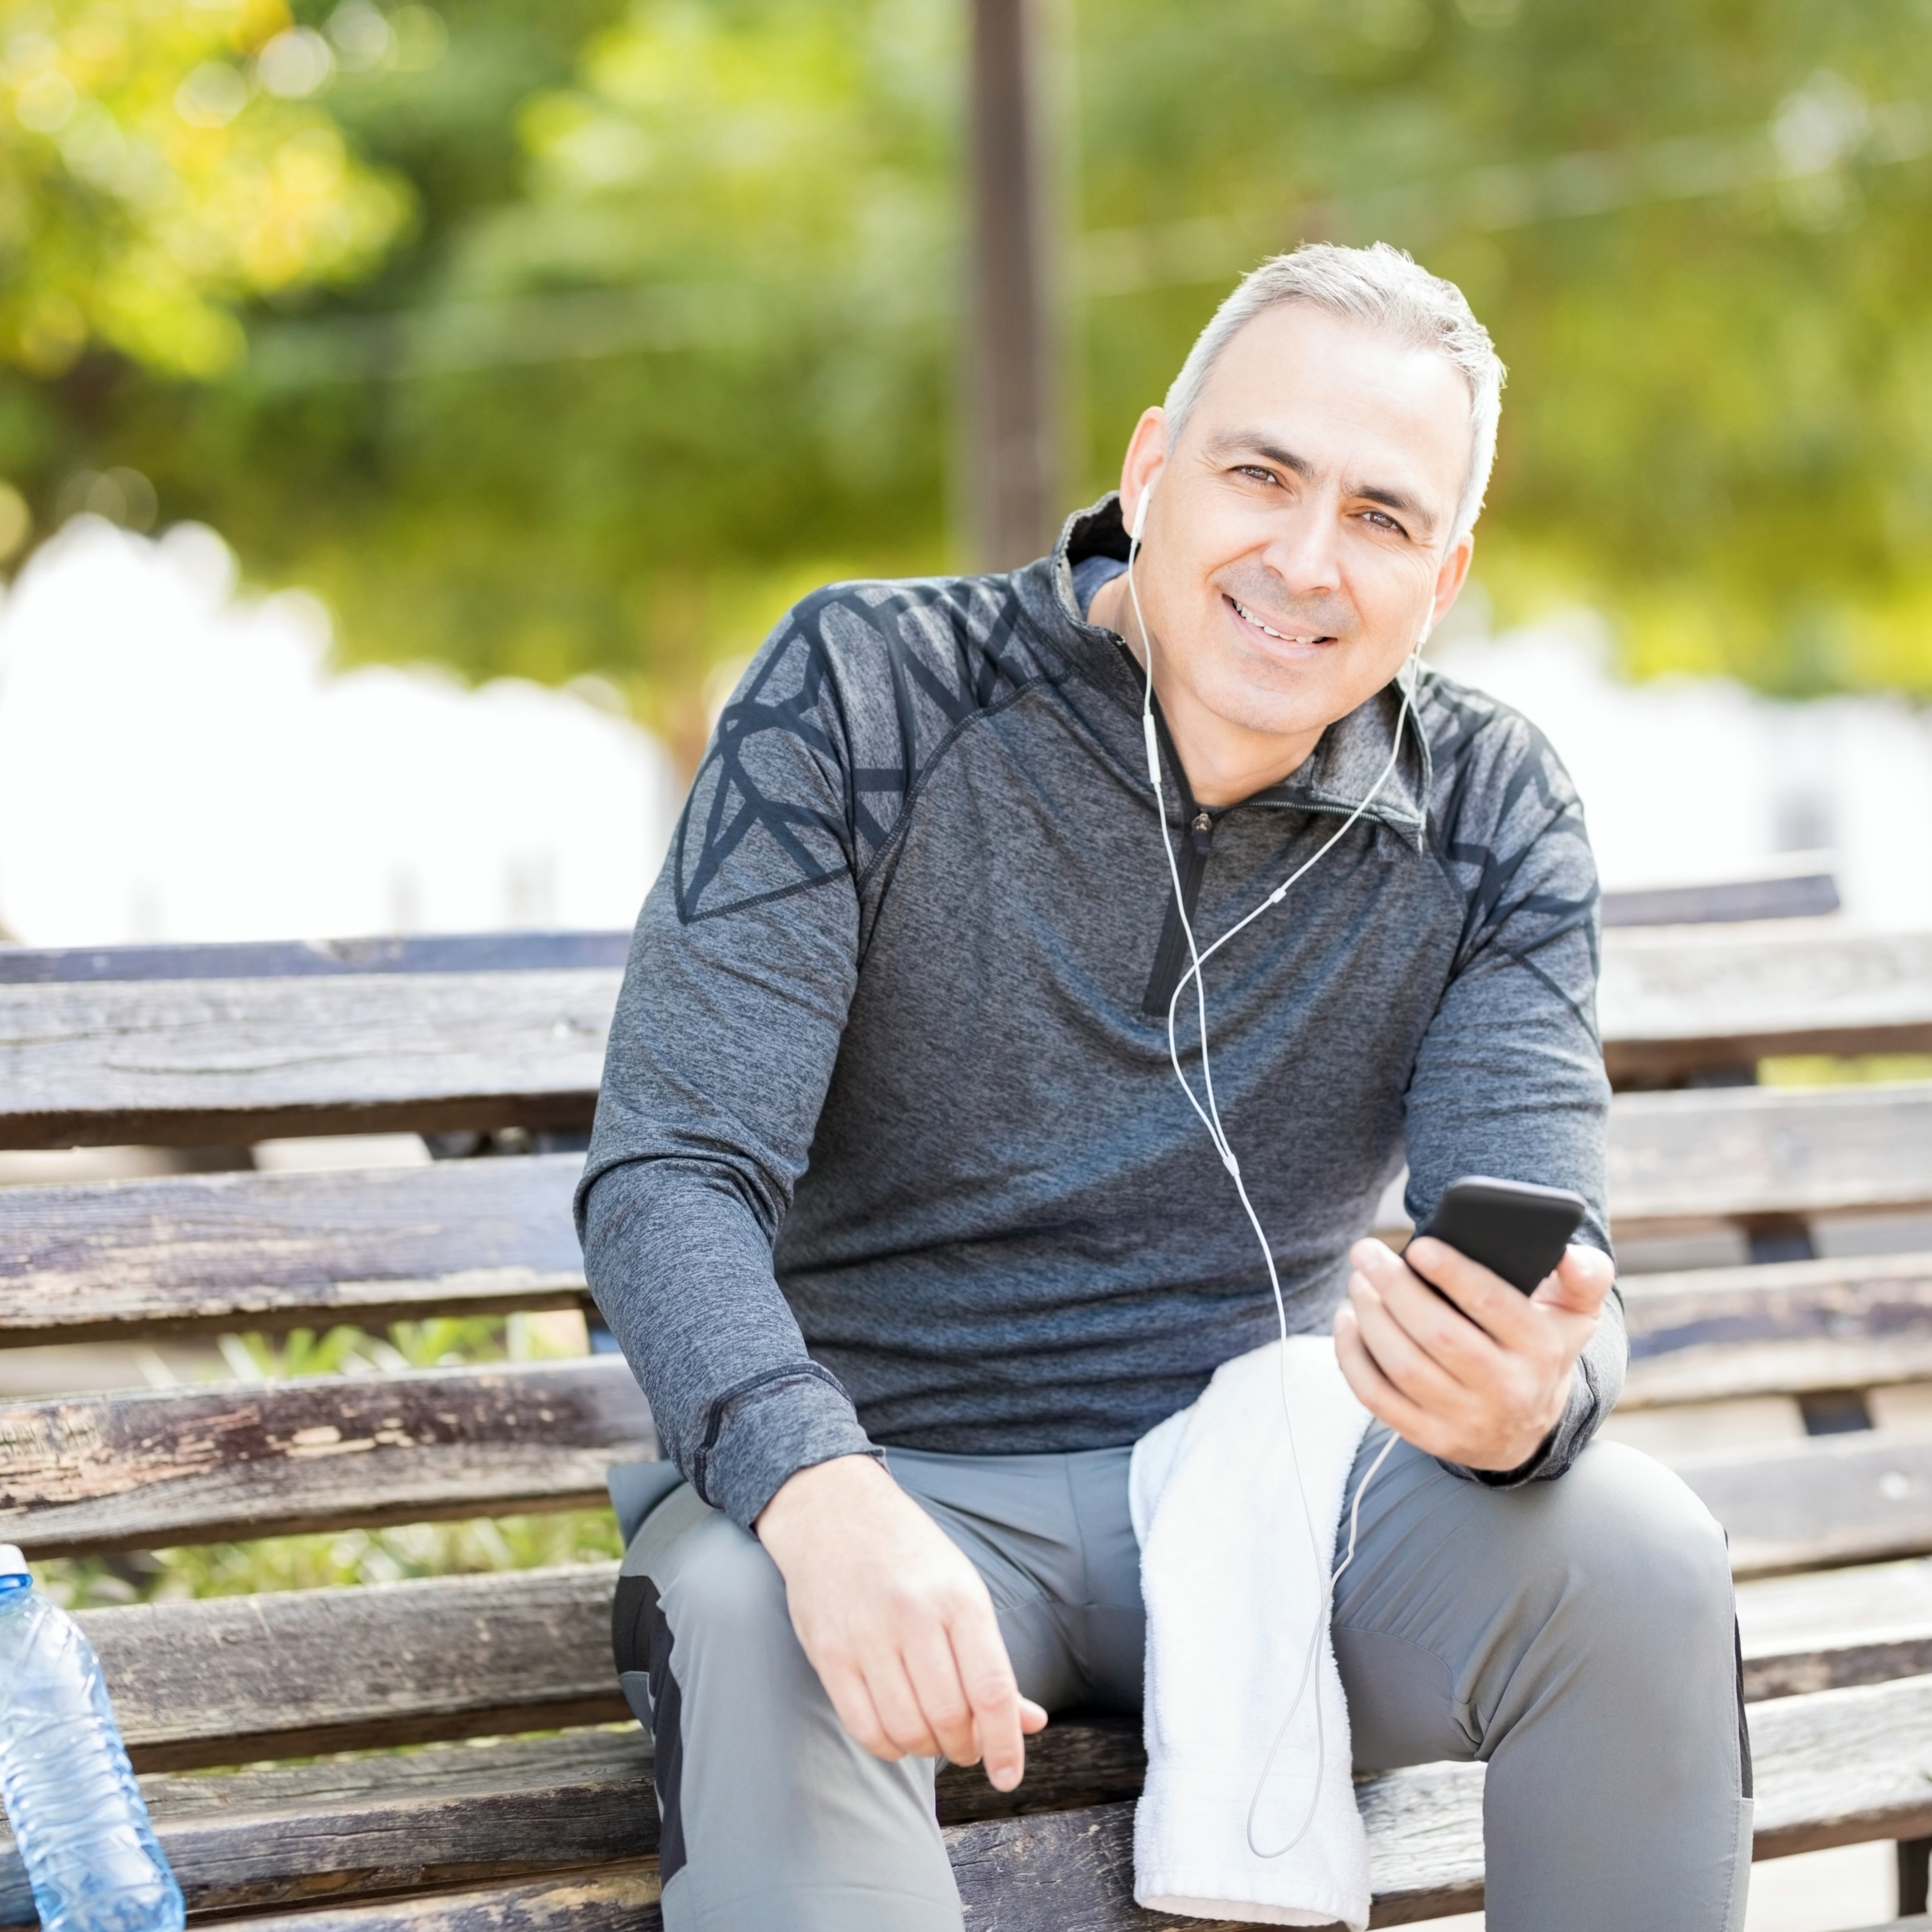 Good looking mature man listening to music with a smartphone while taking a break from exercising outdoors in a park